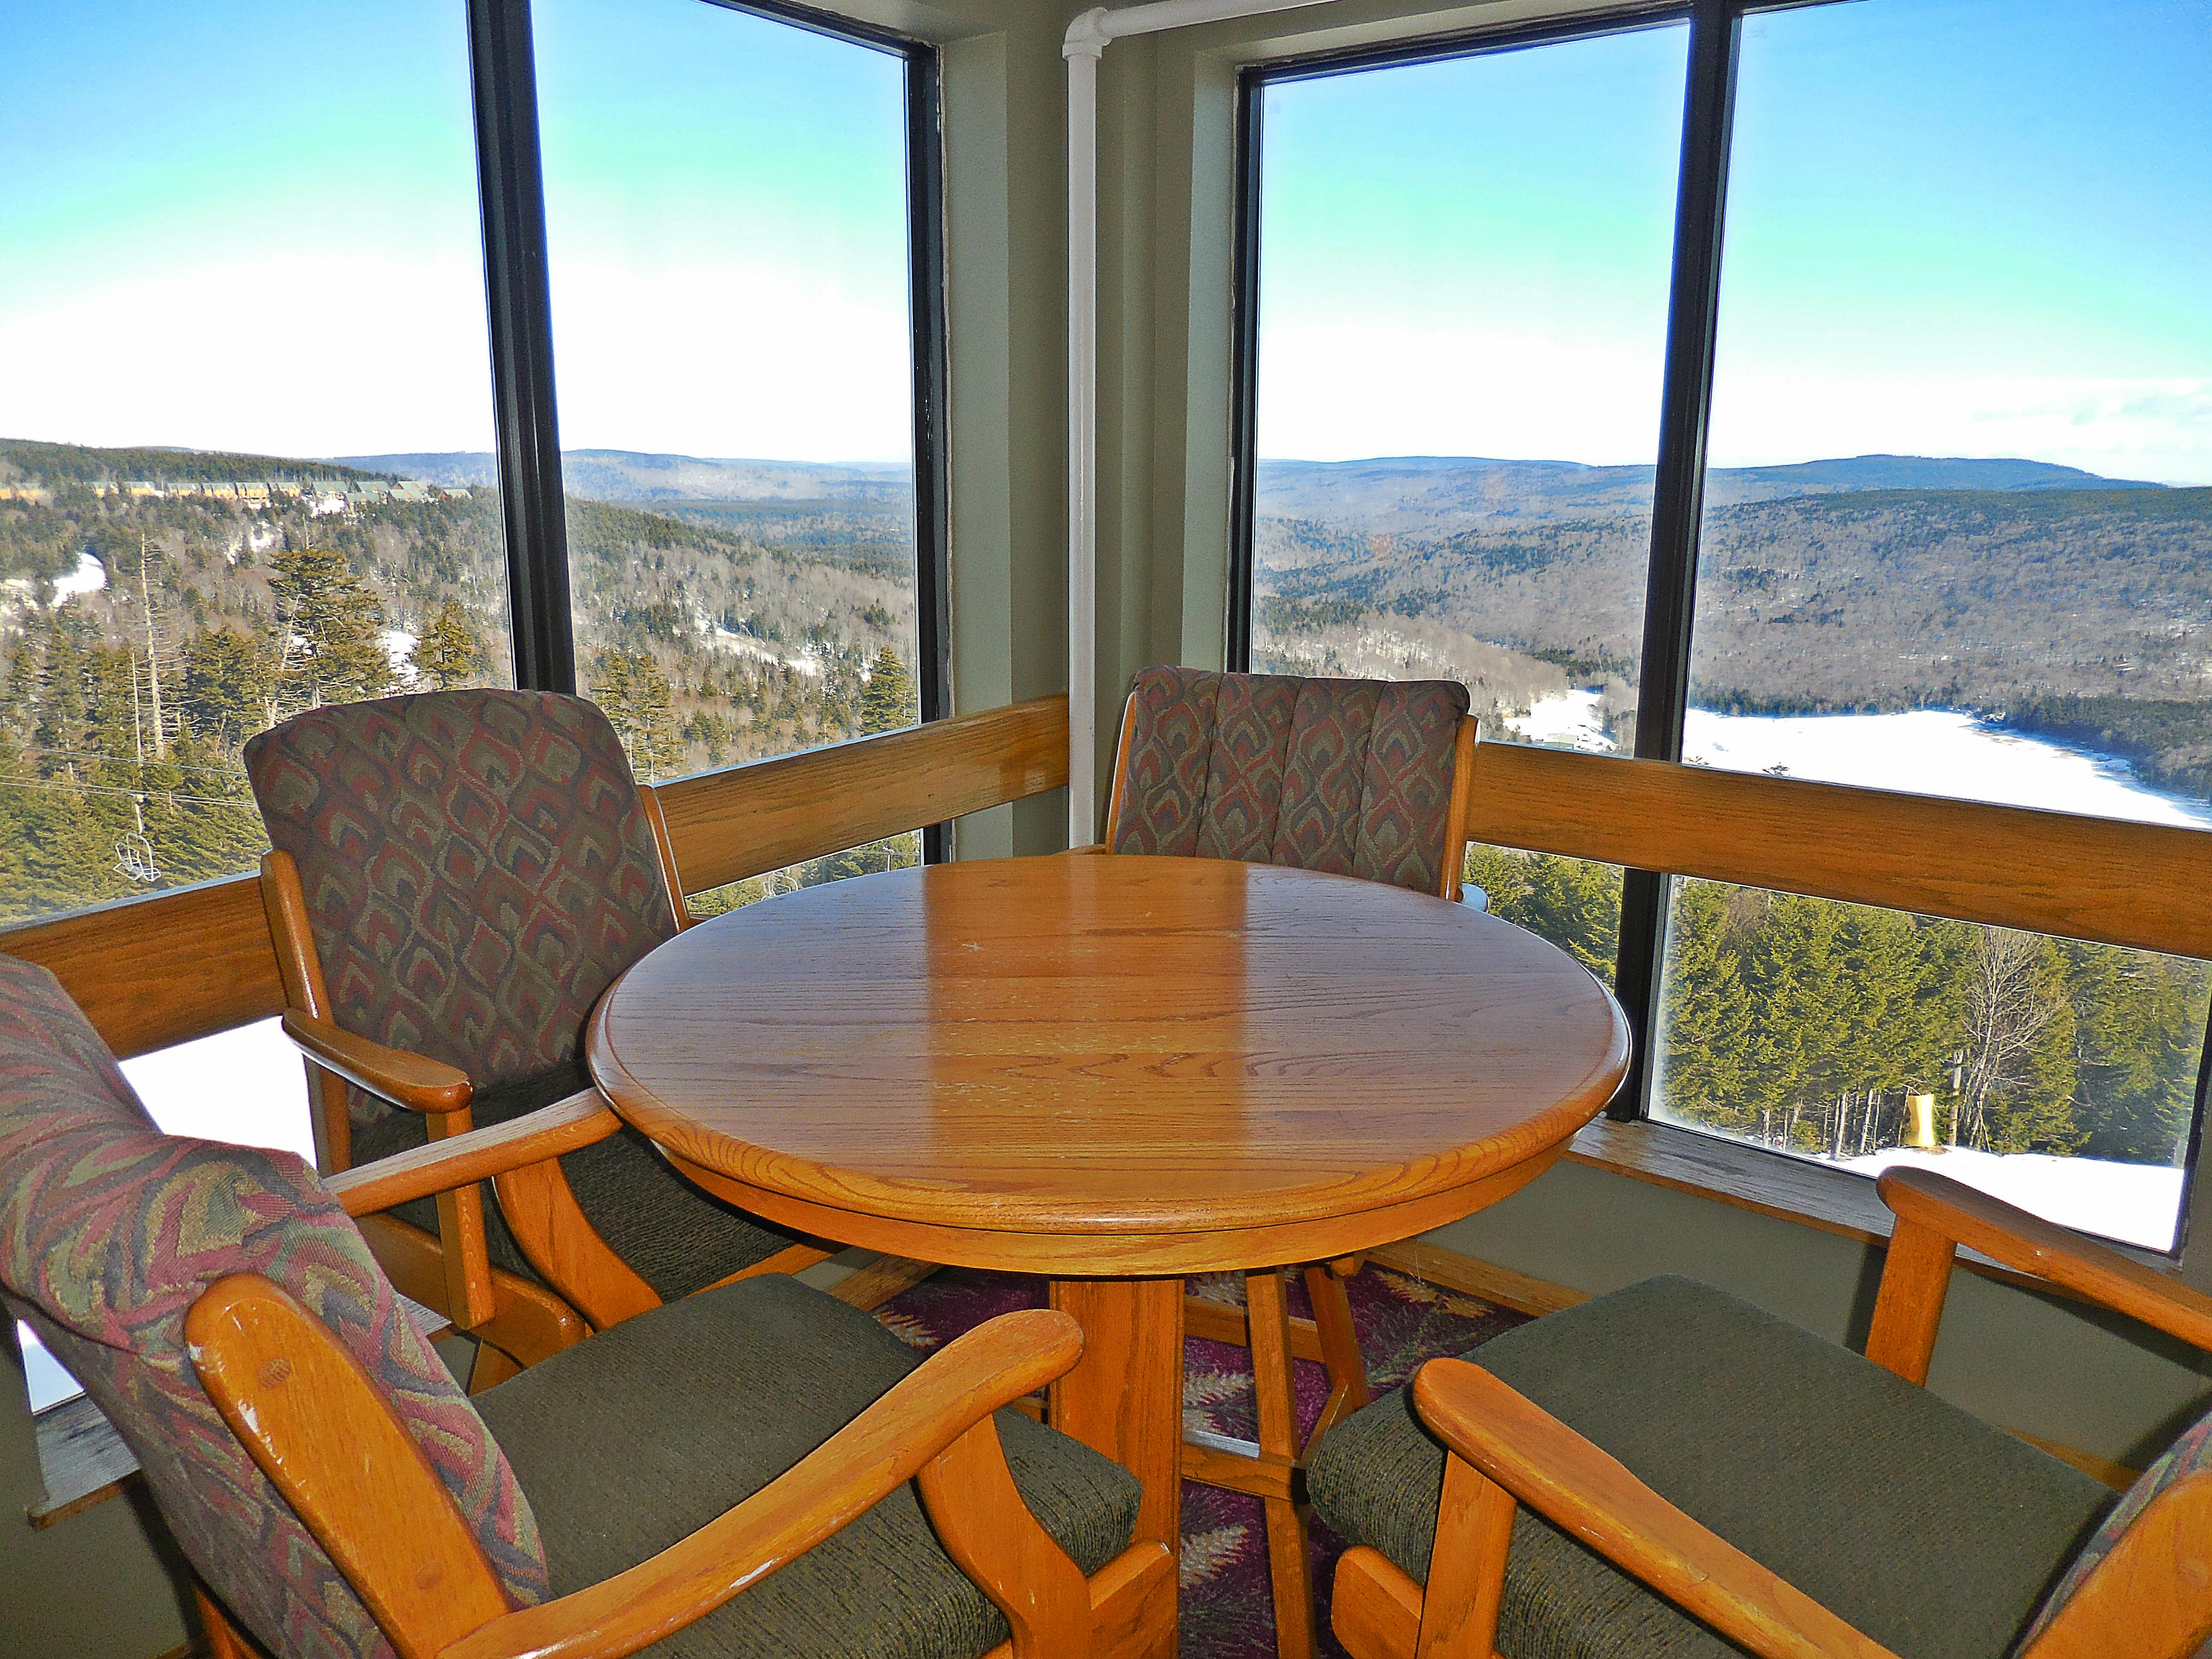 Views of the slopes, mountains, and Shavers Lake from several viewing areas!